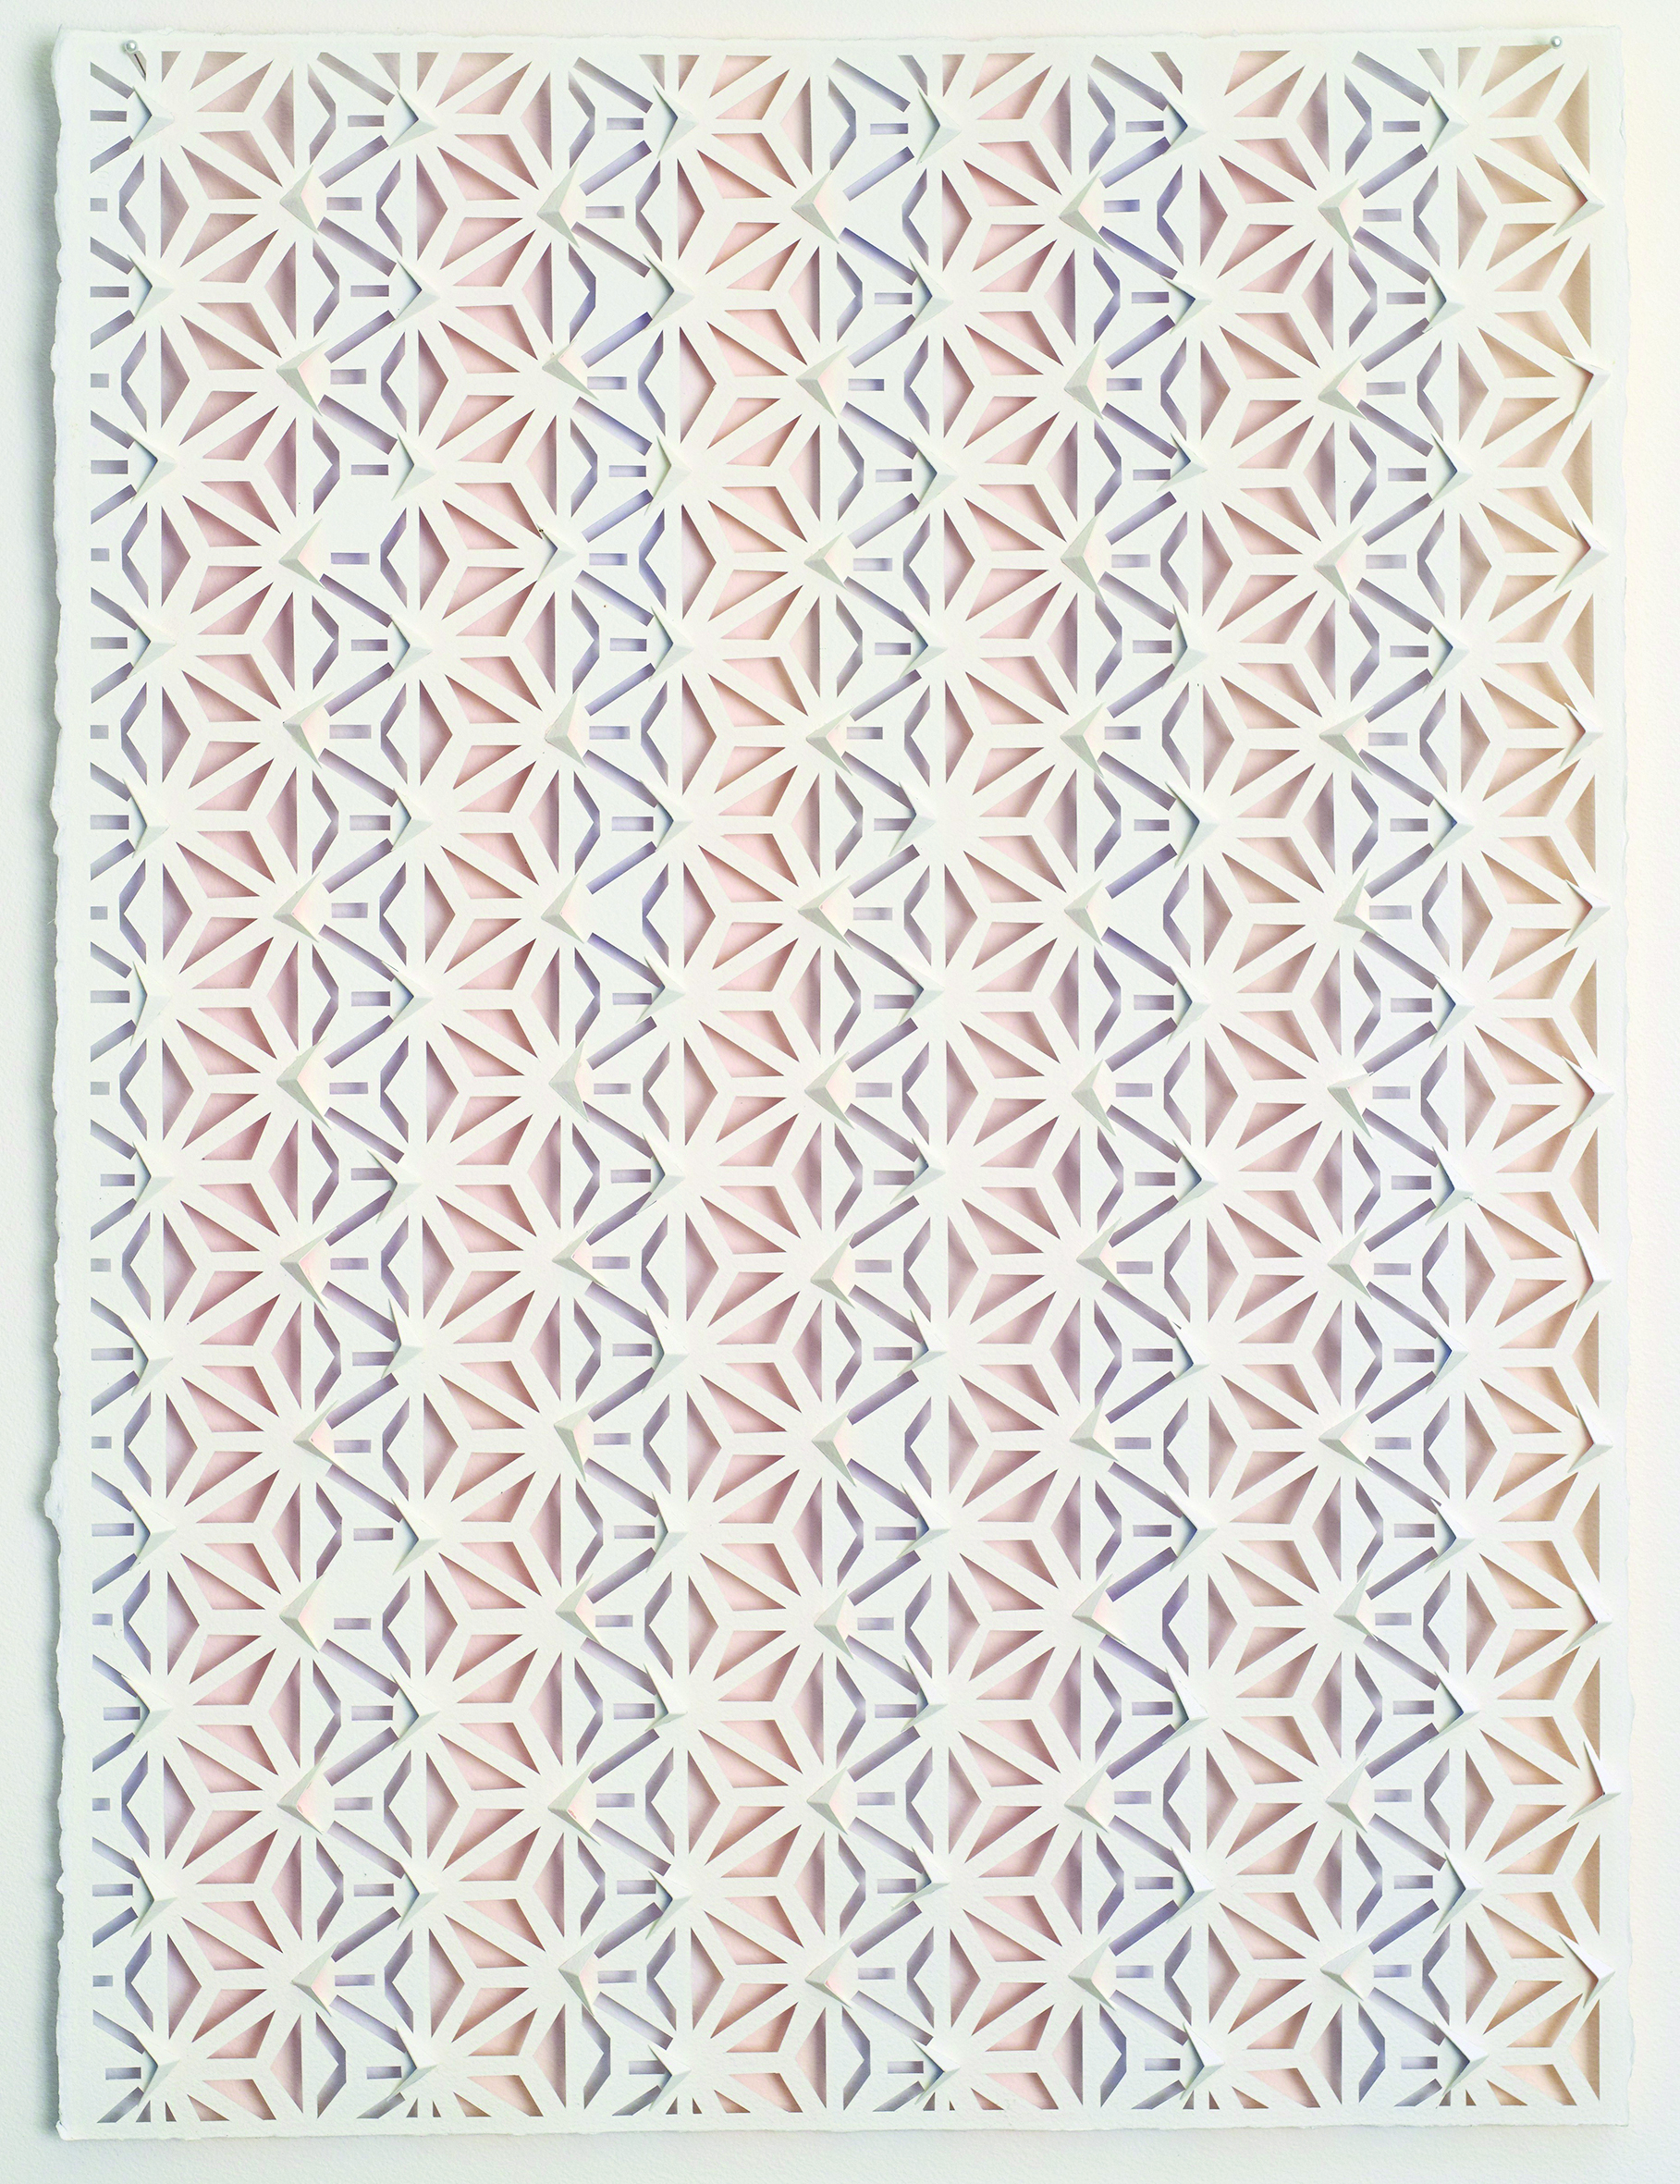 Lee Bethel,  Komon  2018, watercolour on handcut paper, 76 x 54cm. Image courtesy and © the artist.